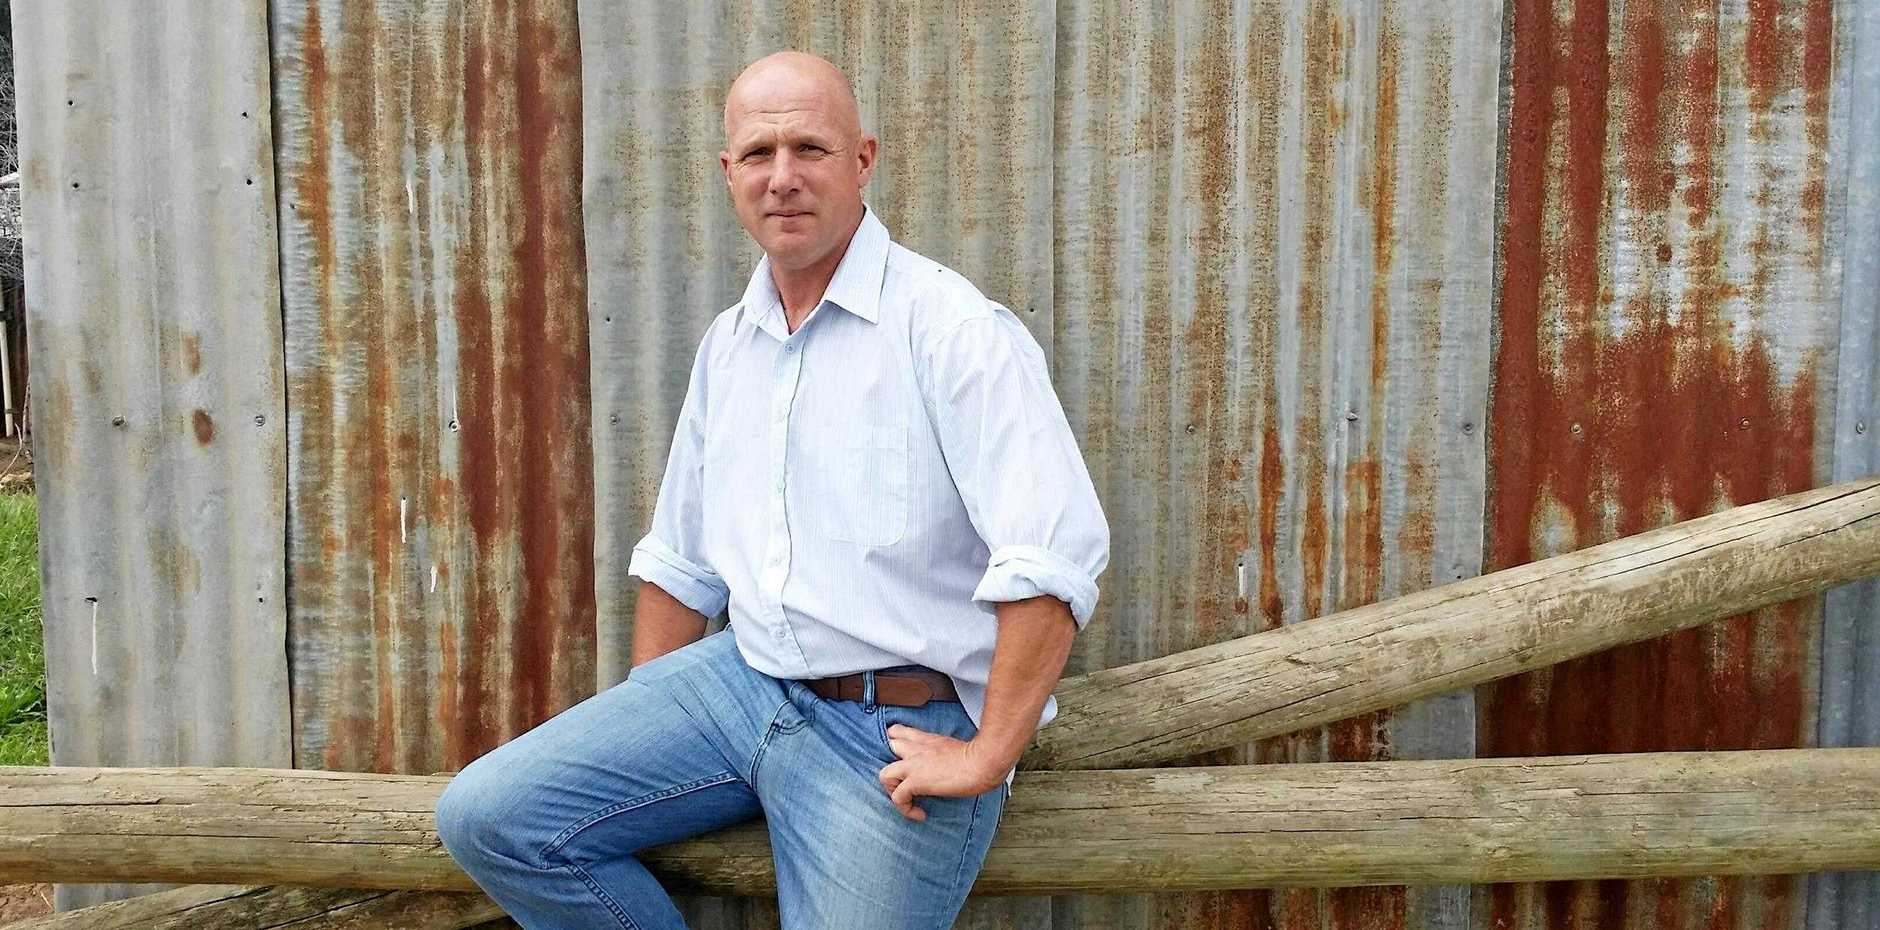 TALKING IT OVER: Warren Davies, The Unbreakable Farmer, will speak at the Lockyer Drought Support Forum this month.